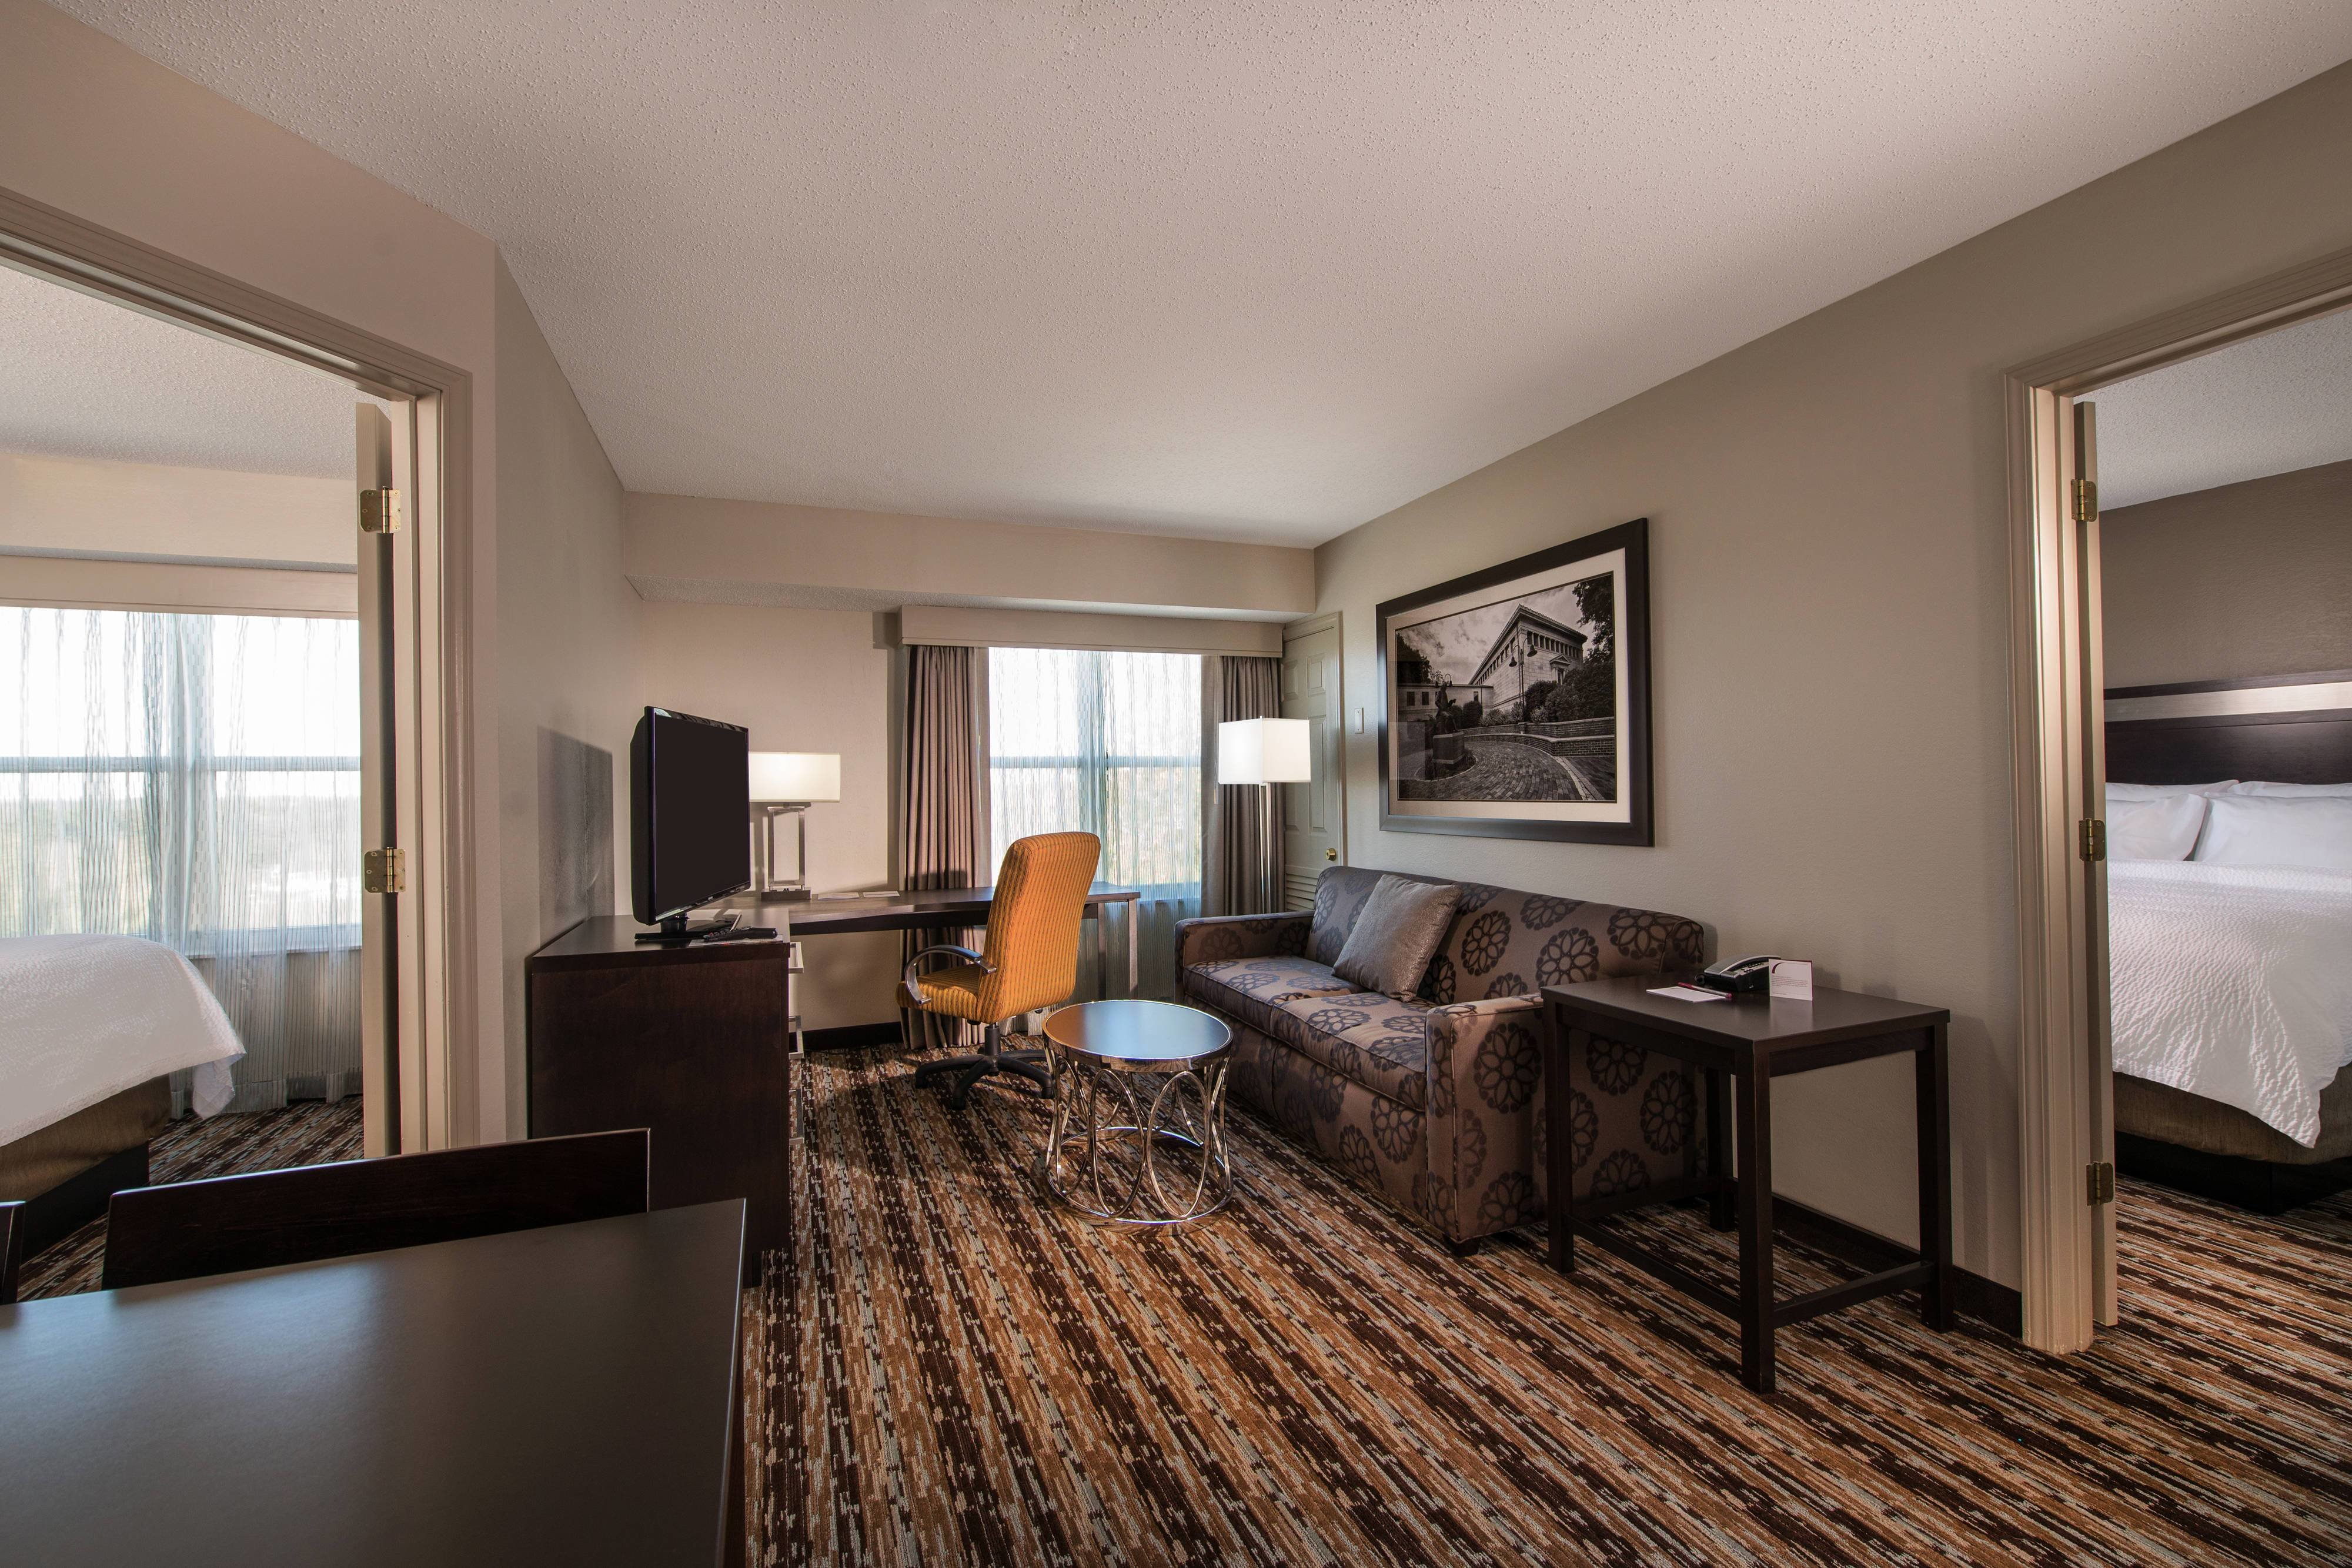 Best Residence Inn Boston Franklin Hotel Guest Rooms Franklin With Pictures